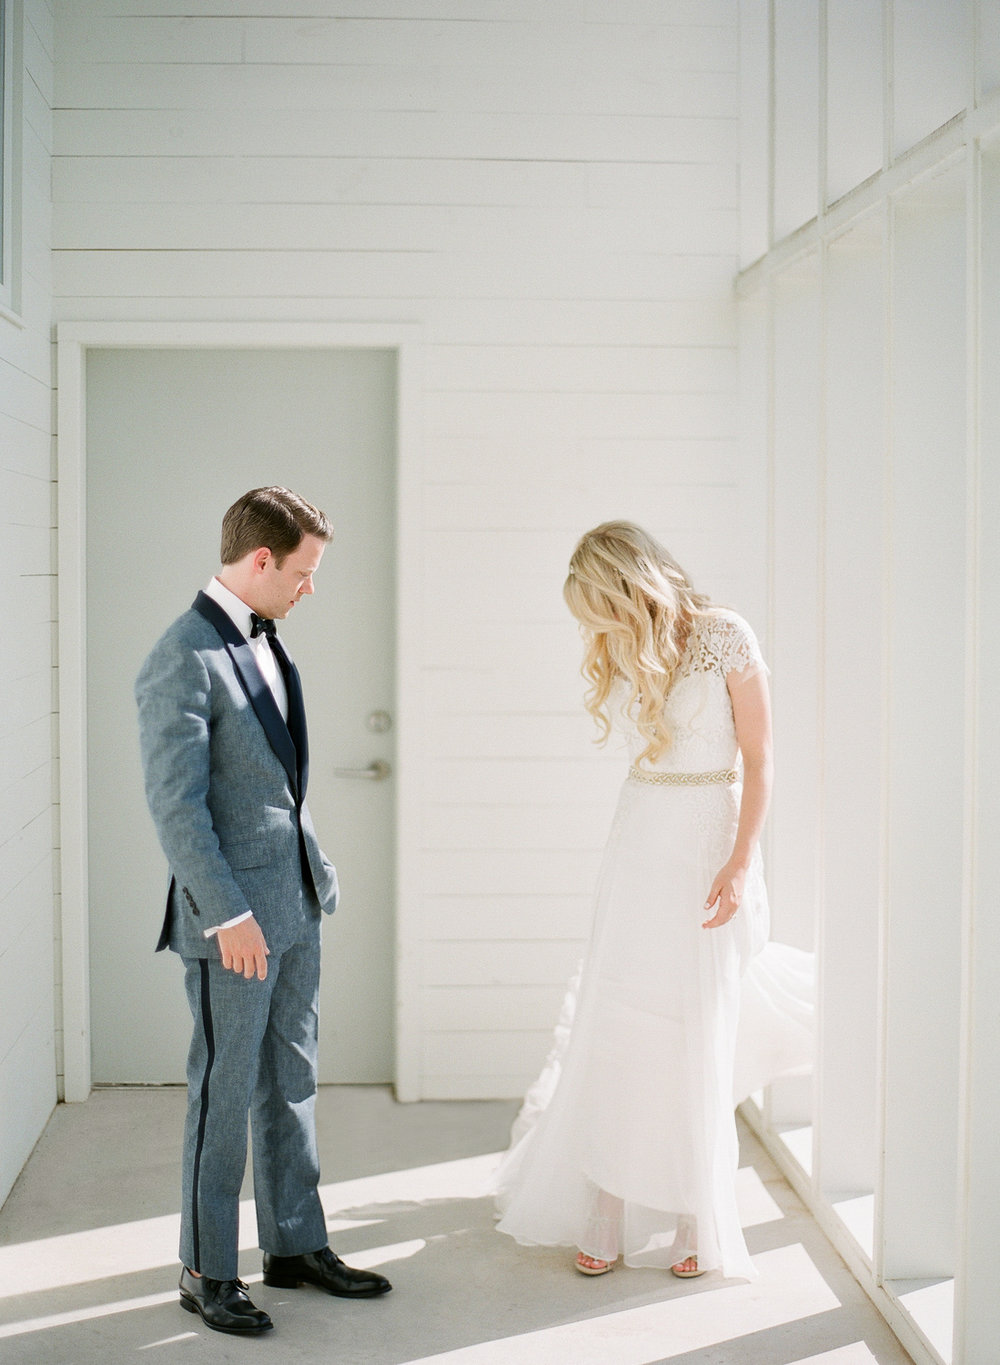 PROSPECT_HOUSE_WEDDING_AUSTIN_TX_BY_MATTHEW_MOORE_PHOTOGRAPHY_00137.jpg